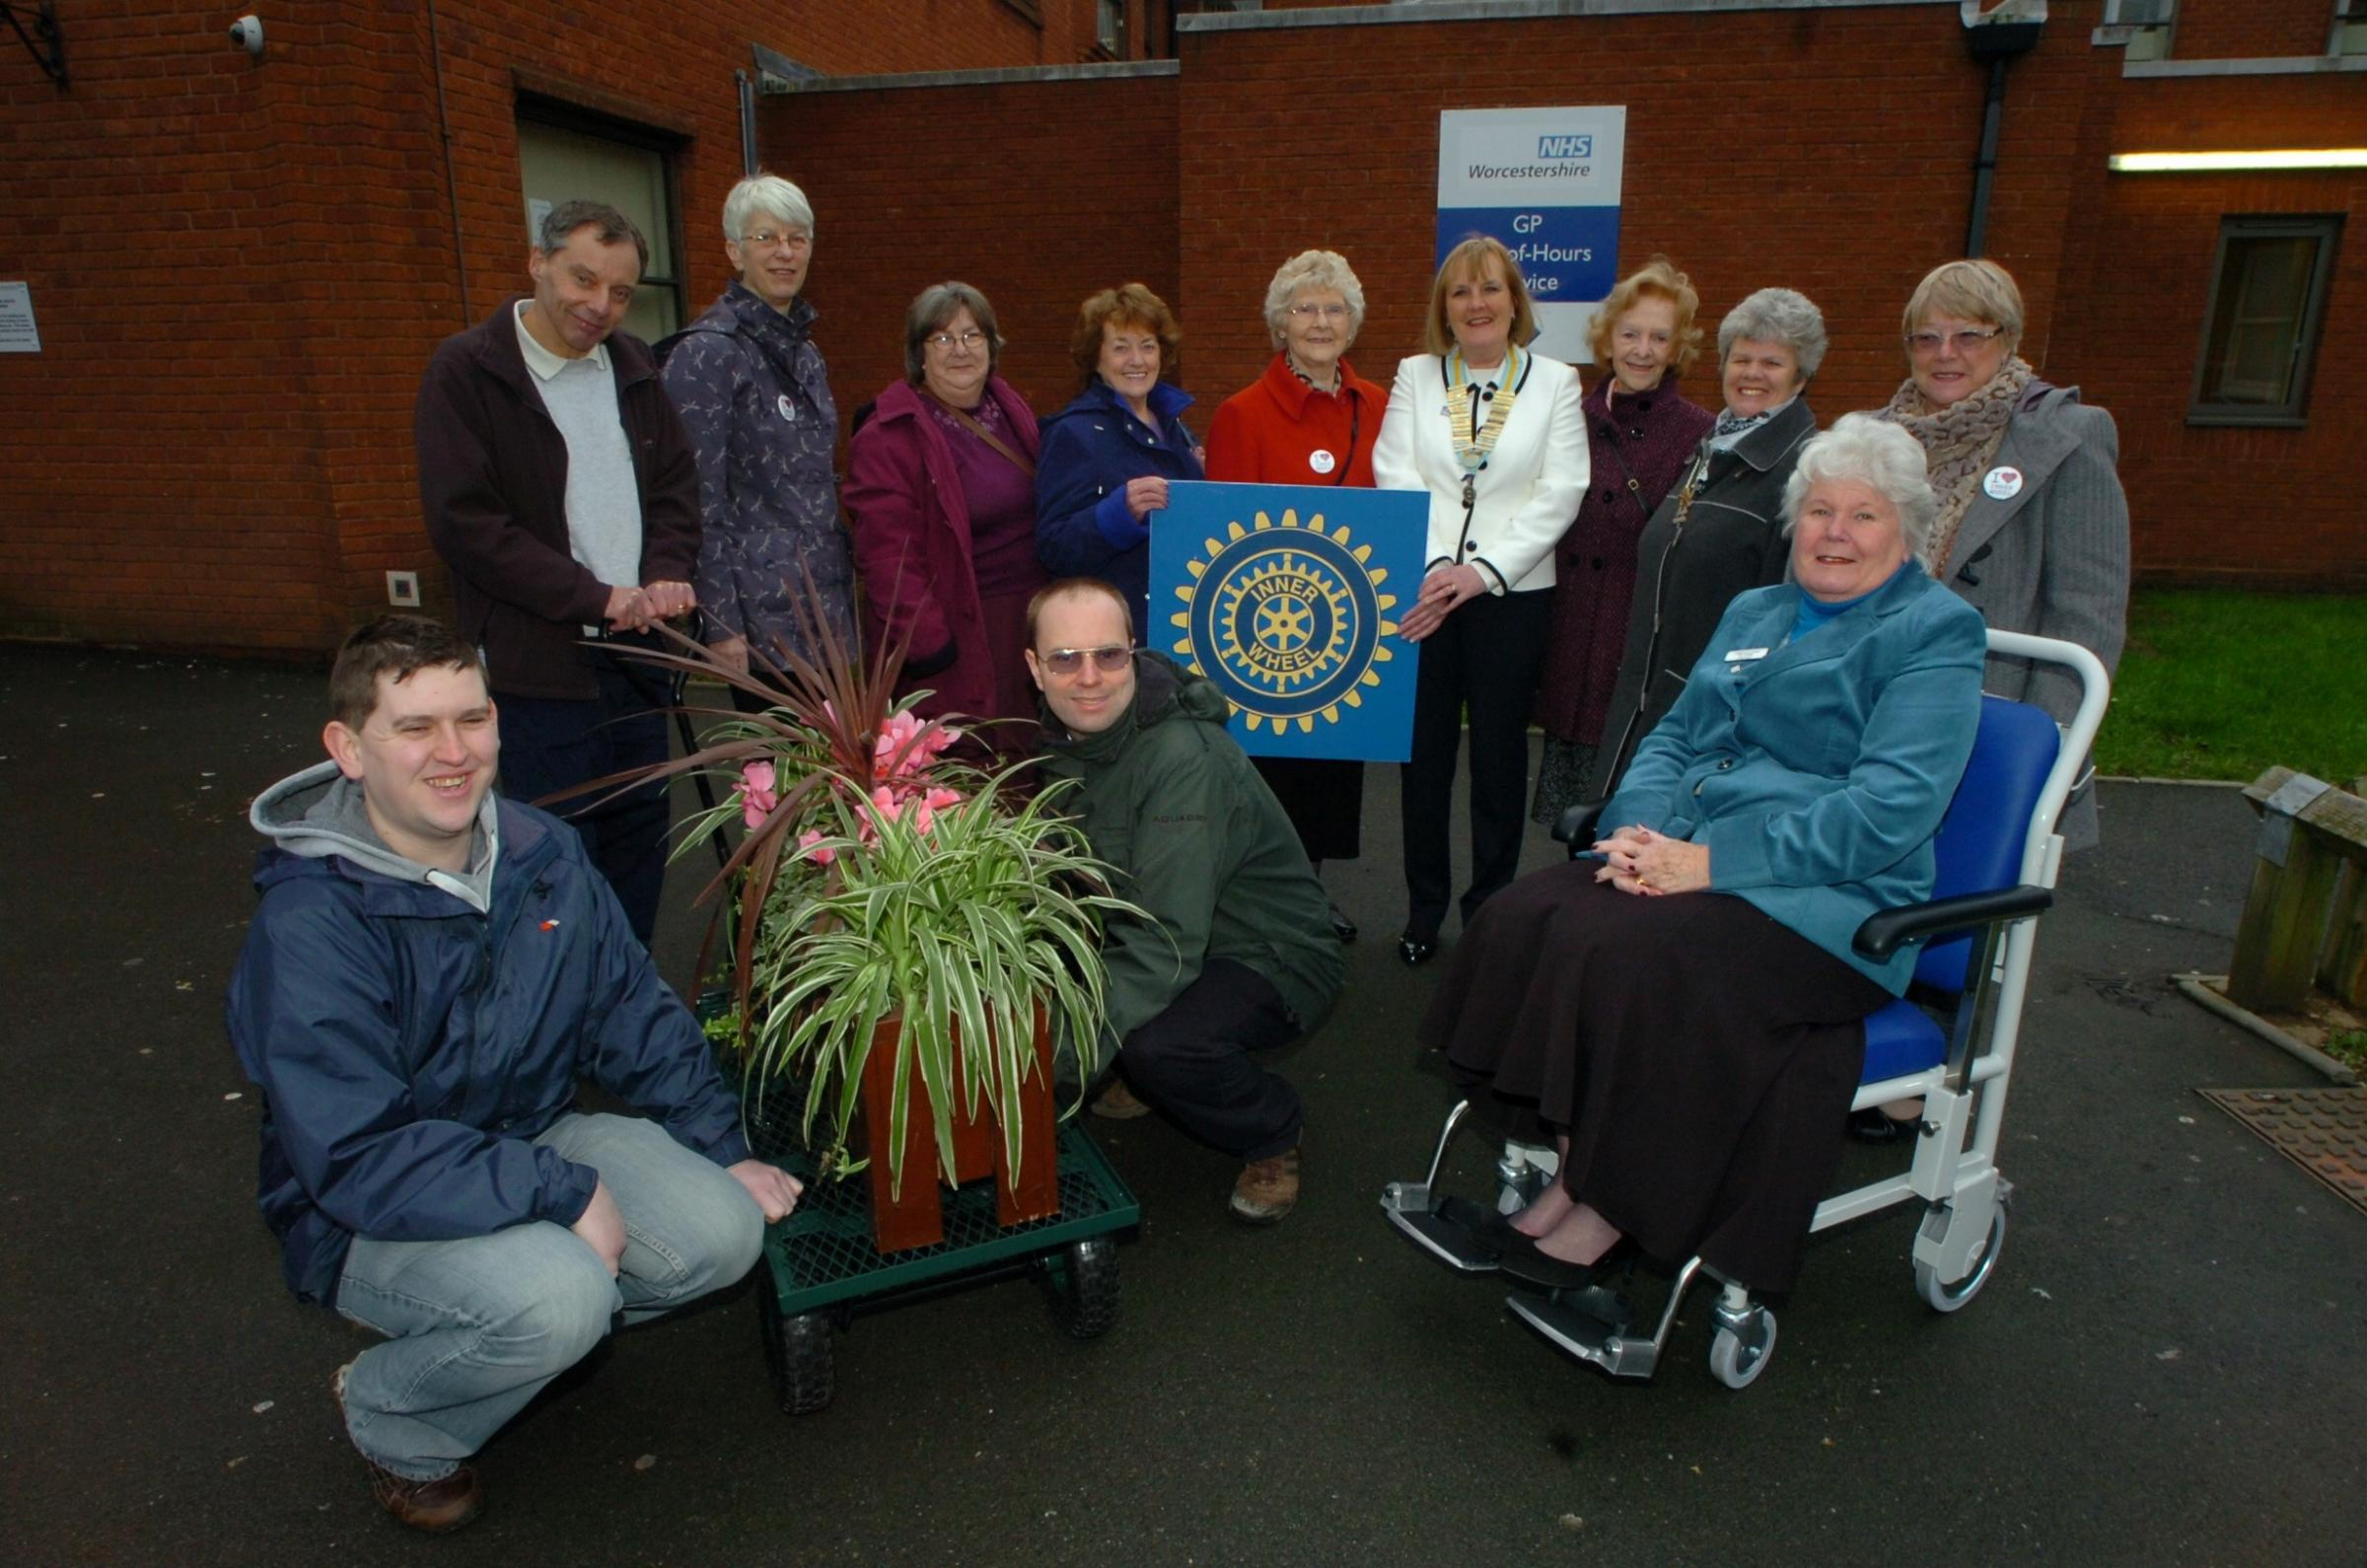 RMM061401 Redditch Inner wheel club have donated money to Alex hospiutal league of friends & where next: (L) Dale Platten, Nick Houghton, & Barry King (C) Liz Ostroumoff - District 6 chair, (Far R) in wheelchair Pat Hadley - Chair leauge of friend